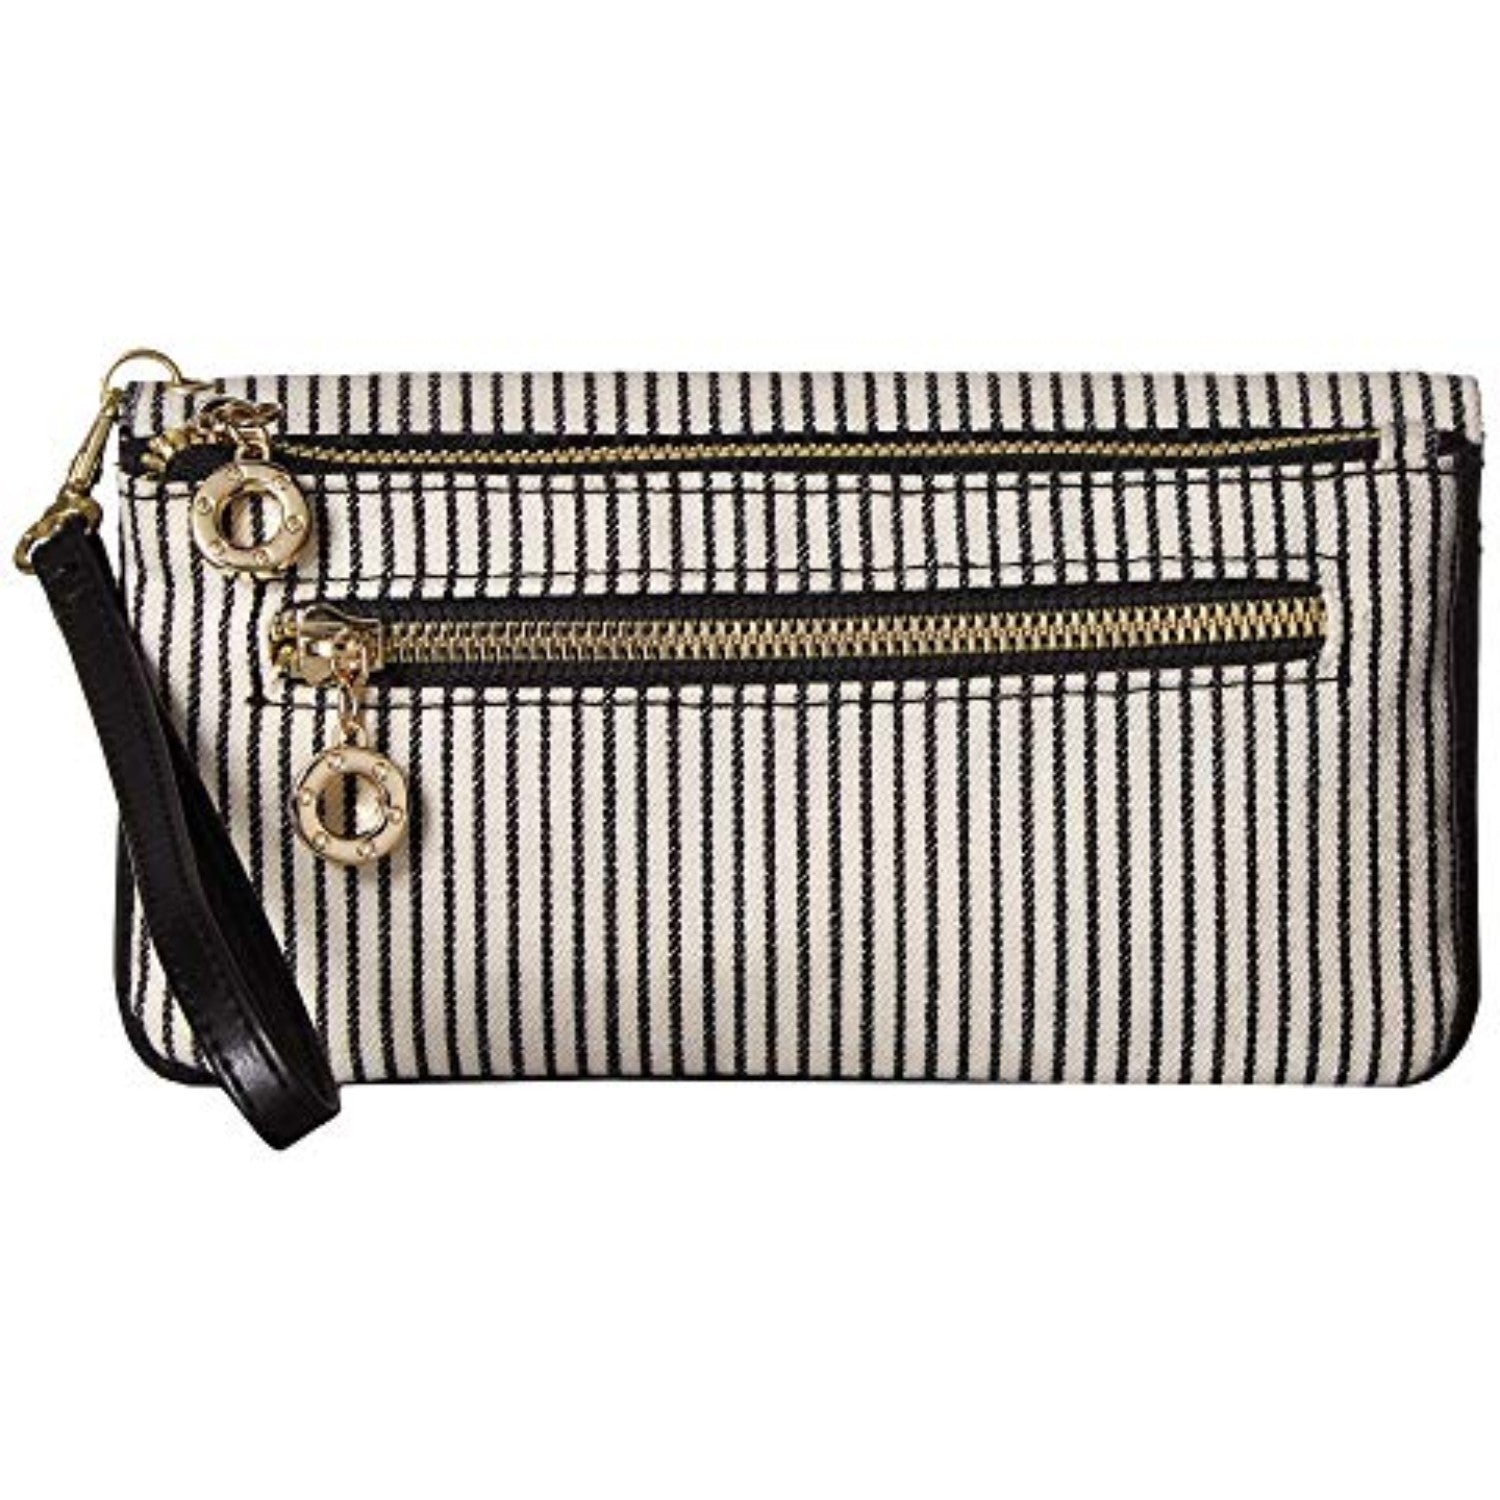 Name Wristlet (Black/White)